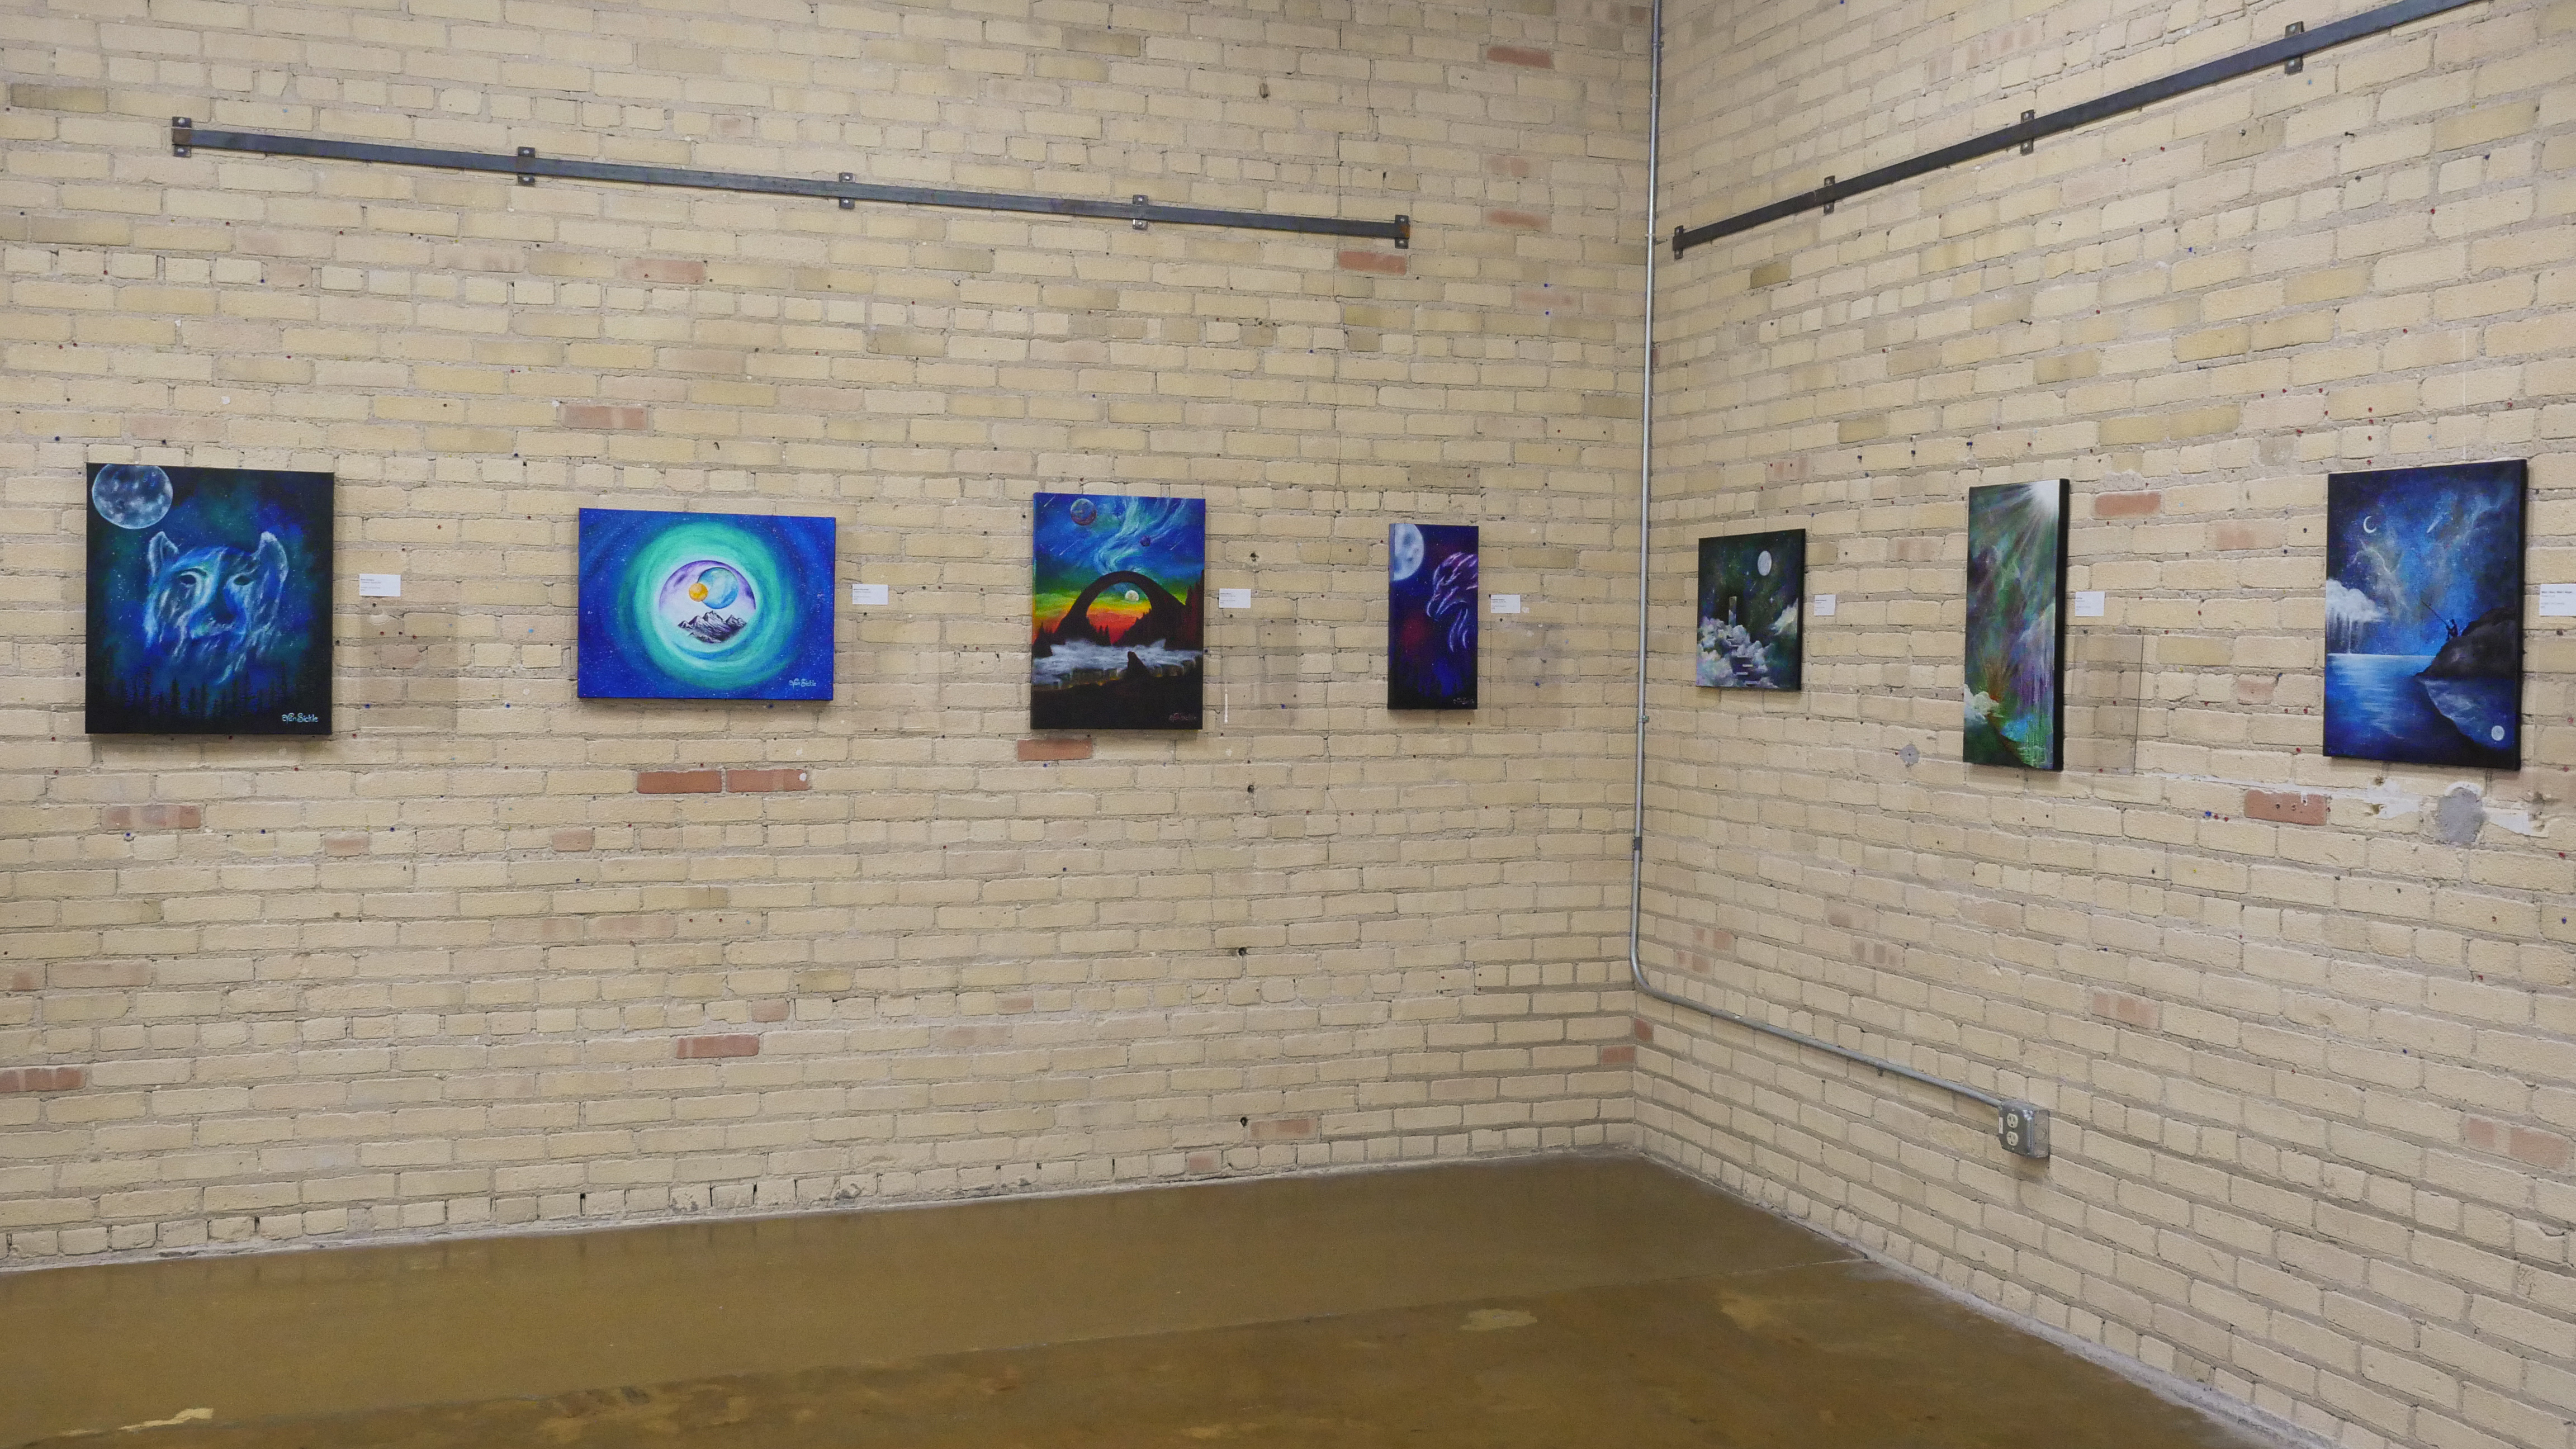 Mission to Space Exhibit at The Art Garage, Thurs. Jan 30, 2020 (WCWF/ Beni Petersen)